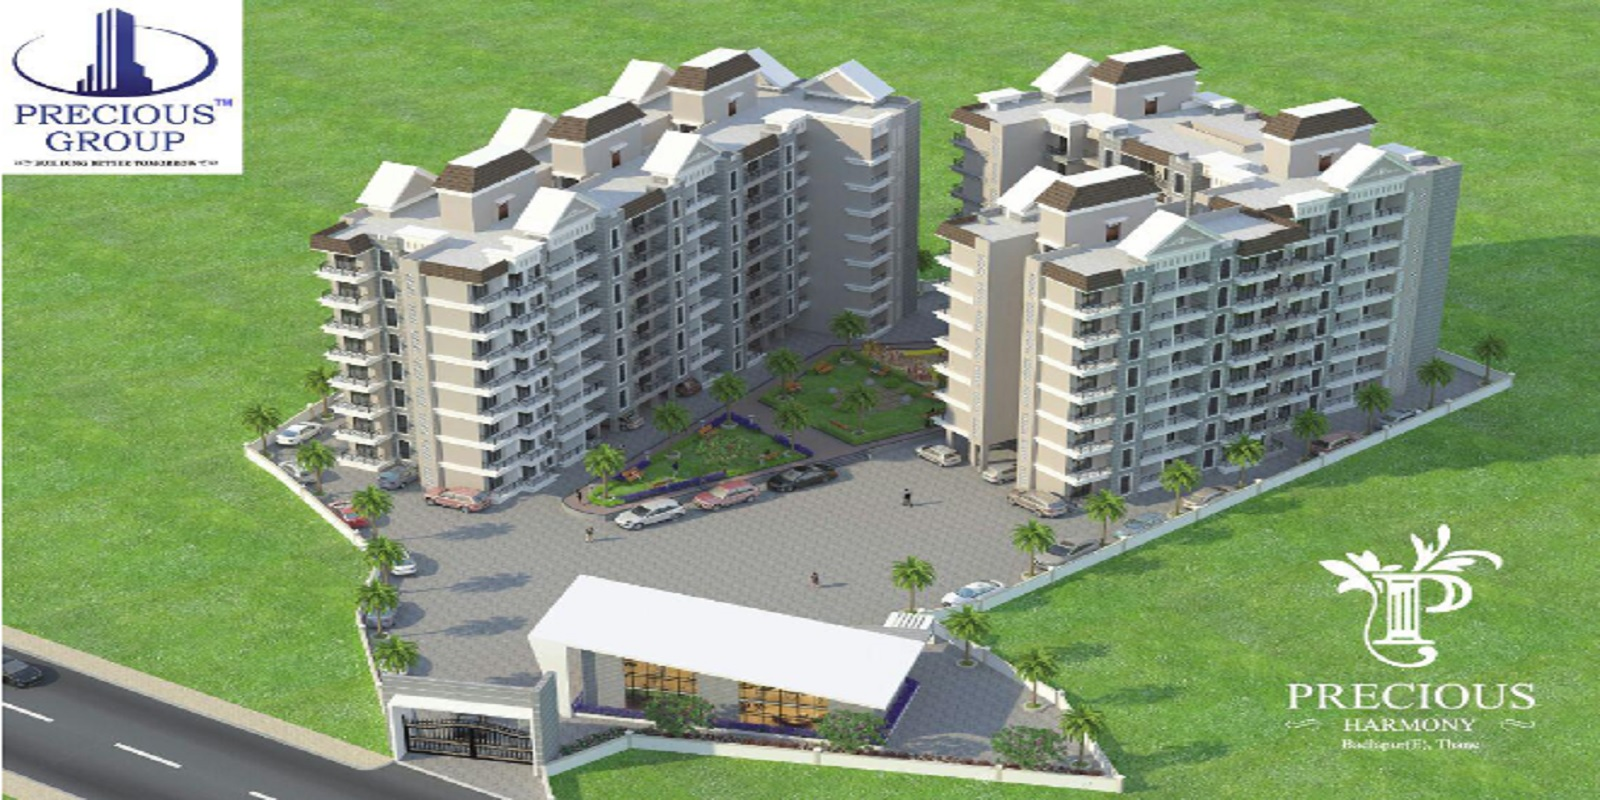 sohan precious harmony phase 2 project project large image1